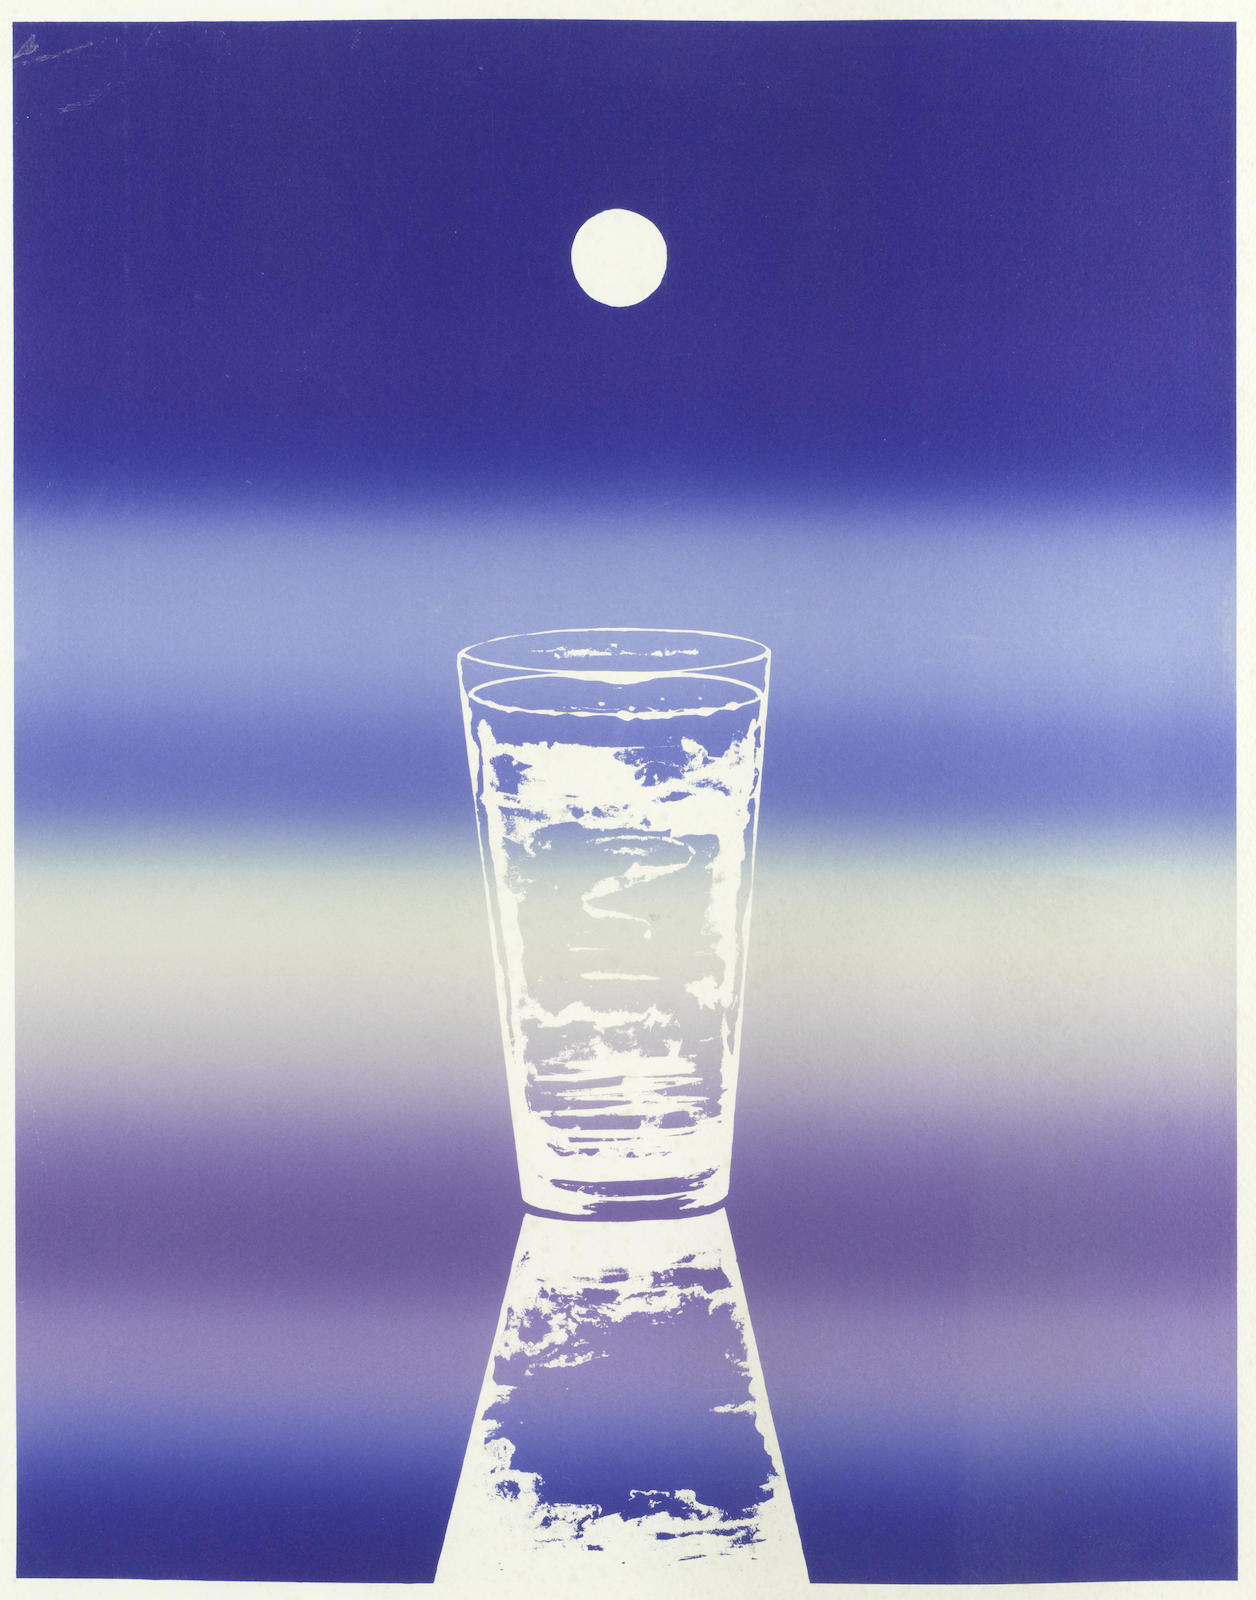 James Rosenquist-My Mind is a Glass of Water-1972